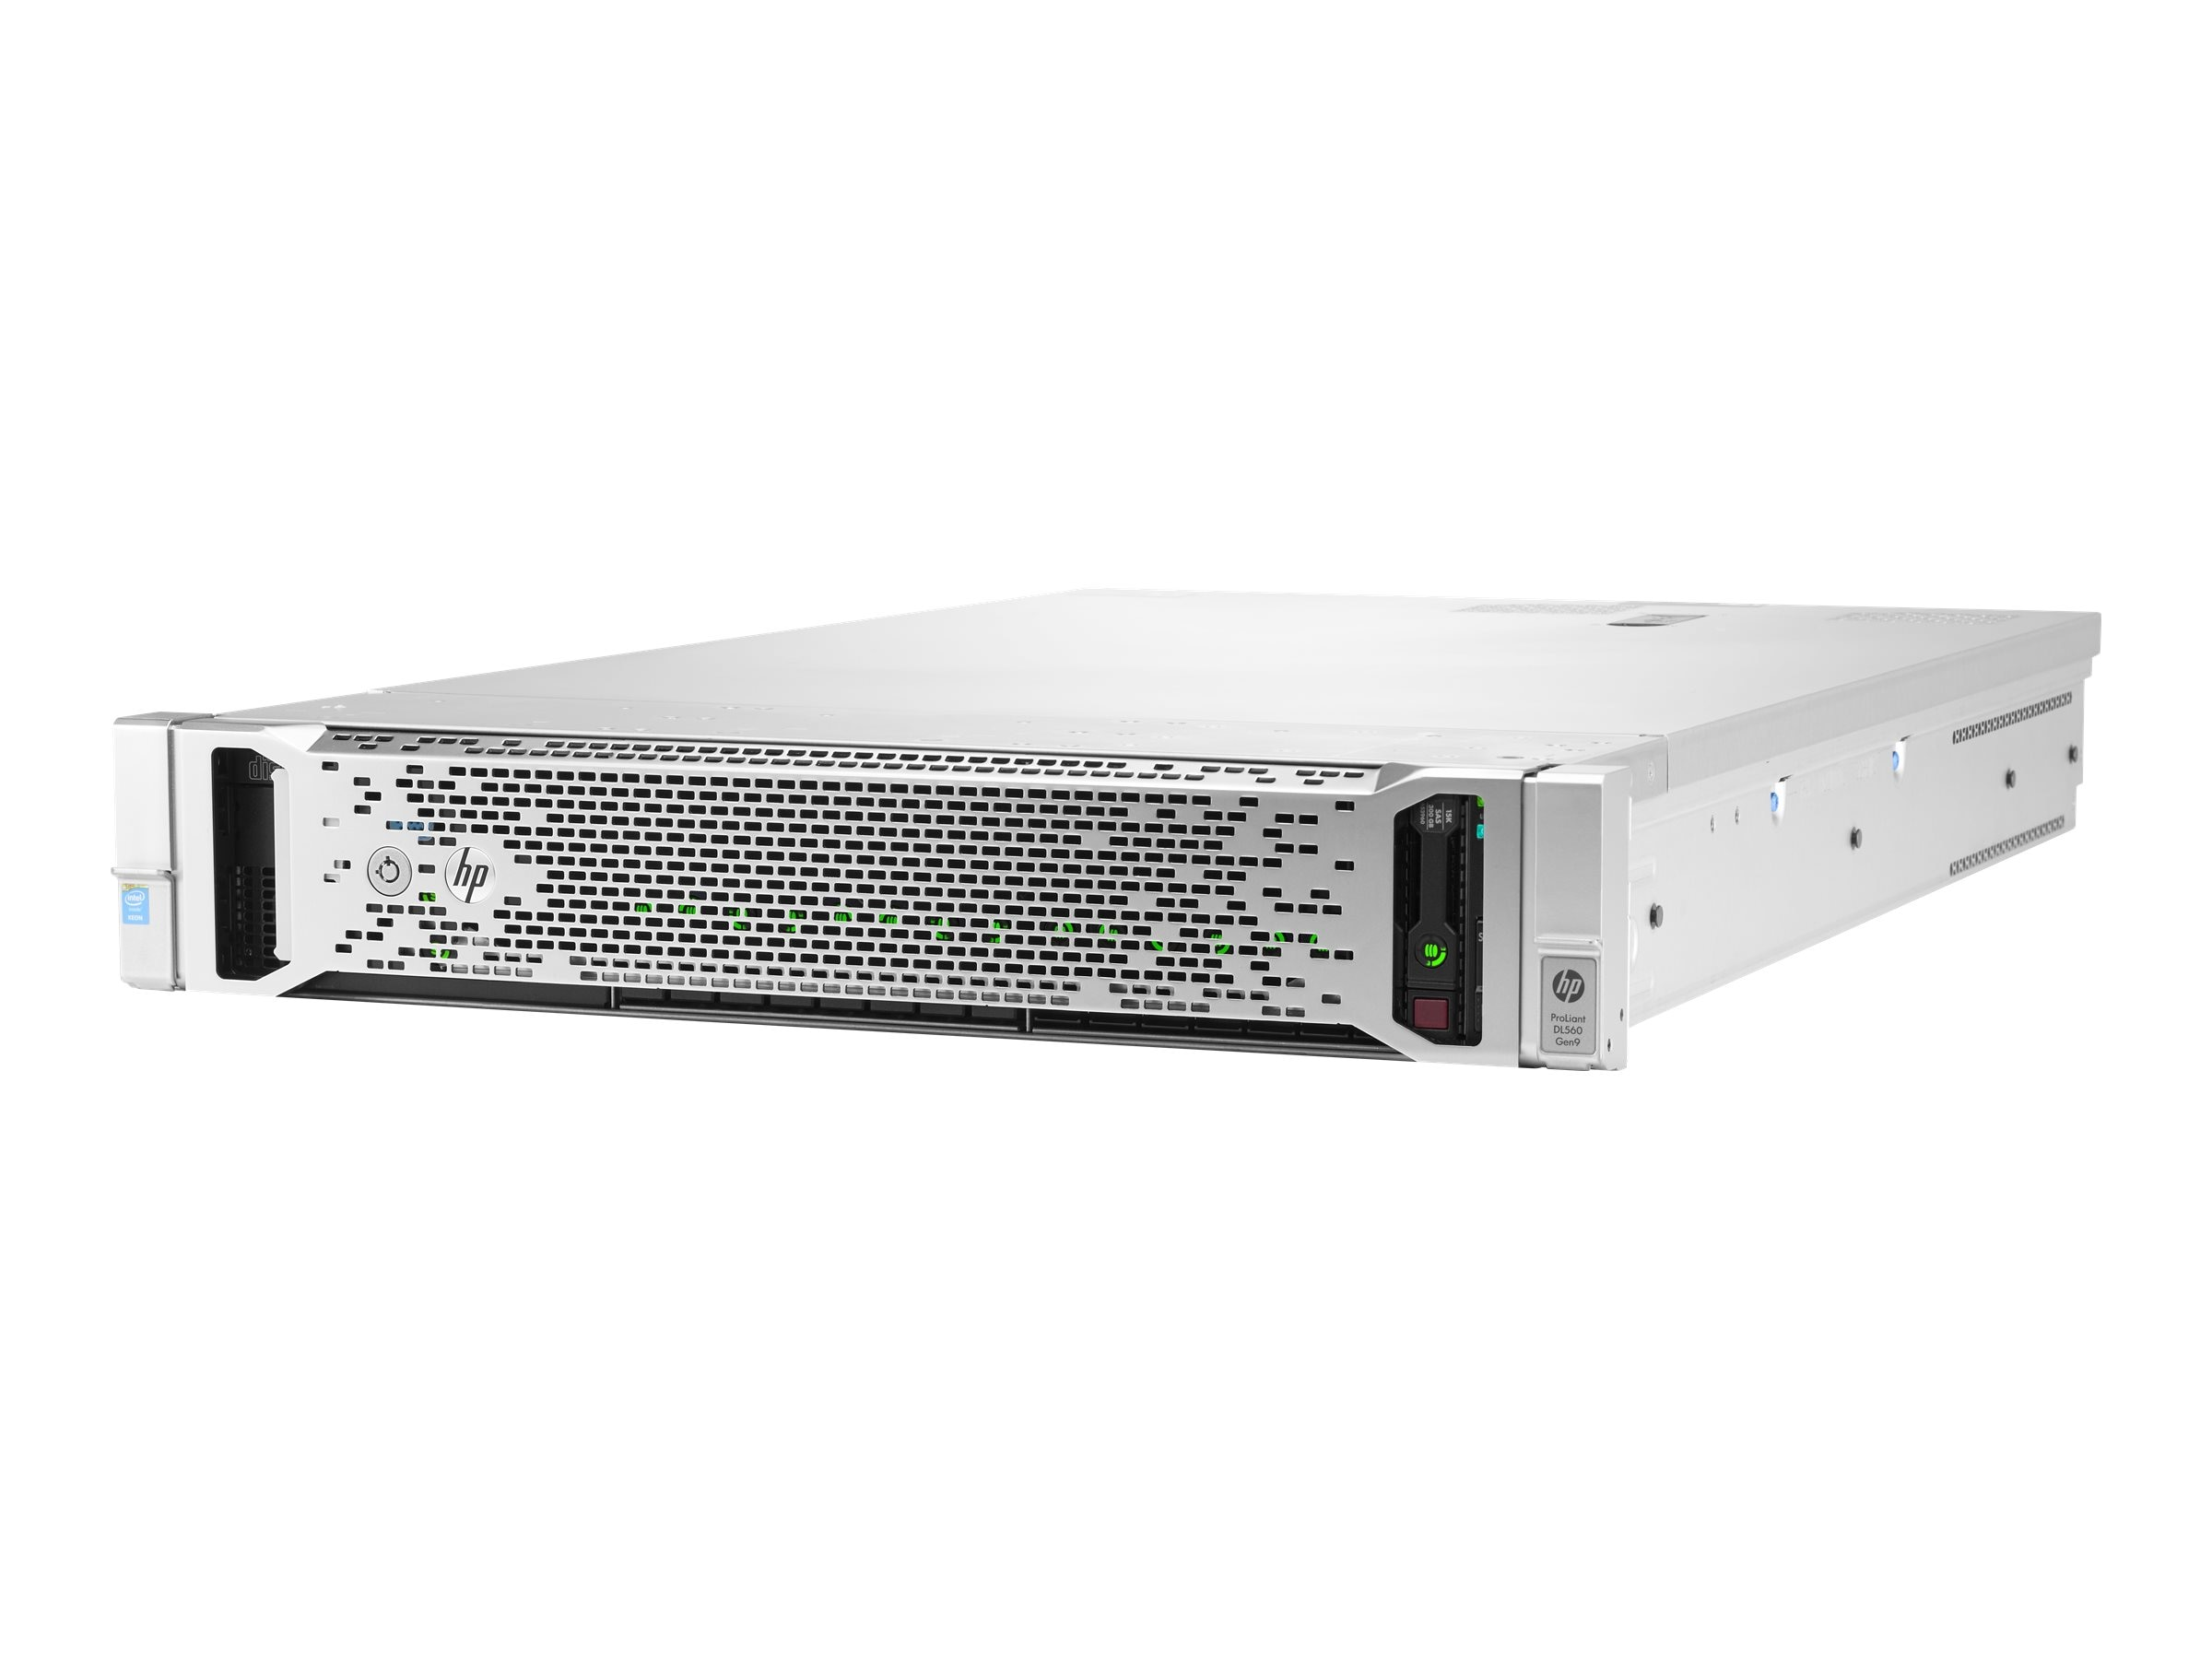 HPE ProLiant DL560 Gen9 Intel 2.0GHz Xeon, 741065-B21, 22903016, Servers